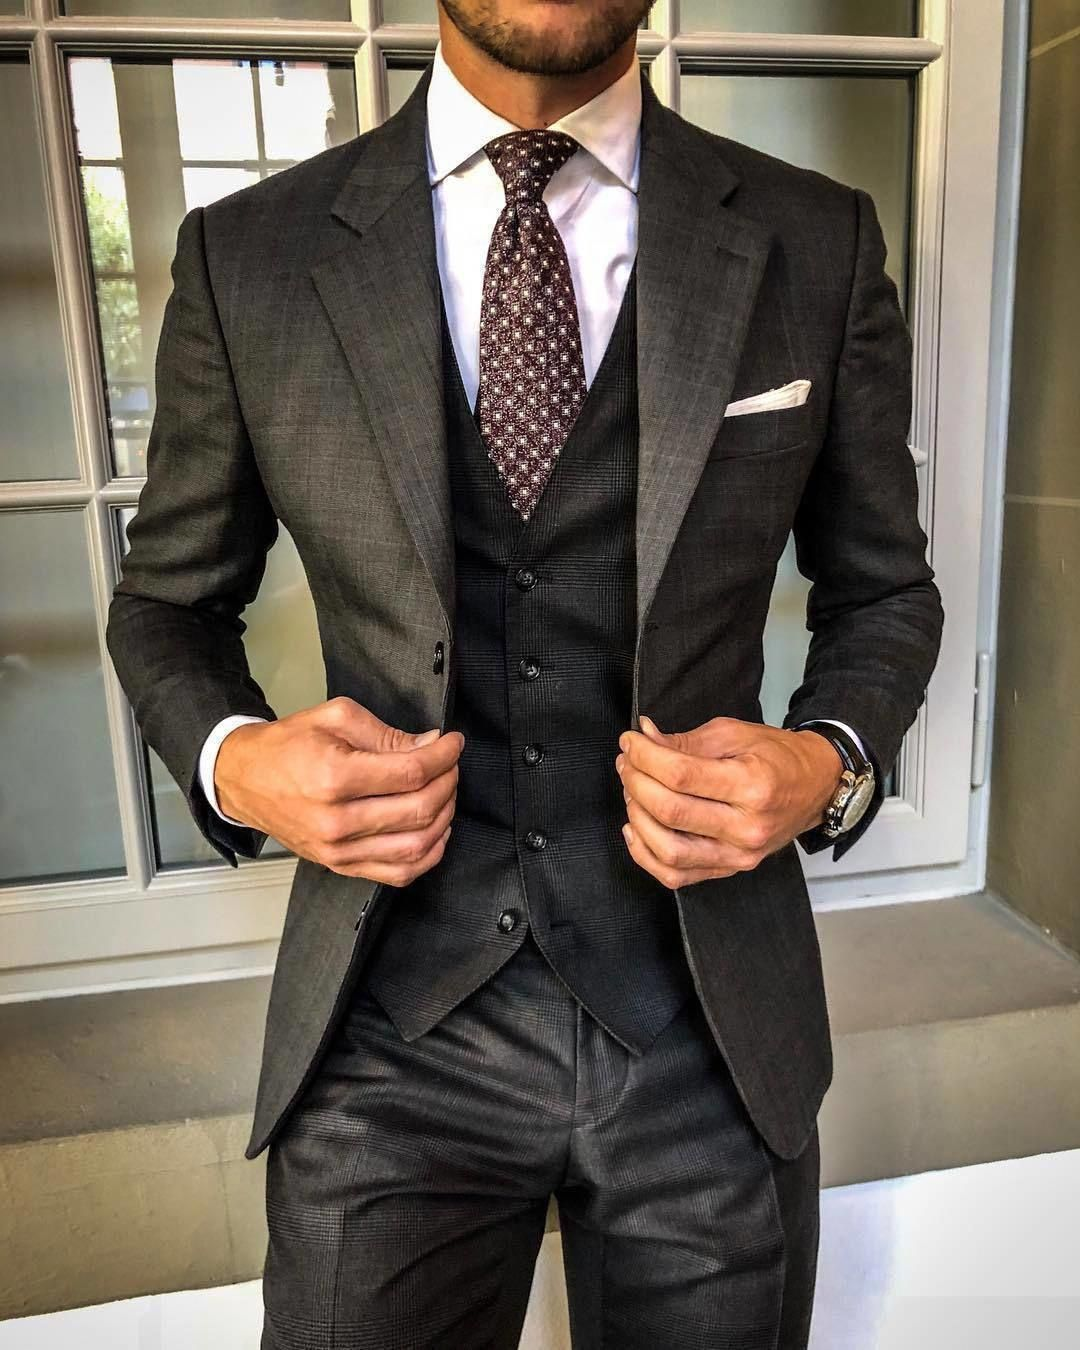 Mens Suits Sale Uk Menssuits Suit Fashion Designer Suits For Men Mens Fashion Suits